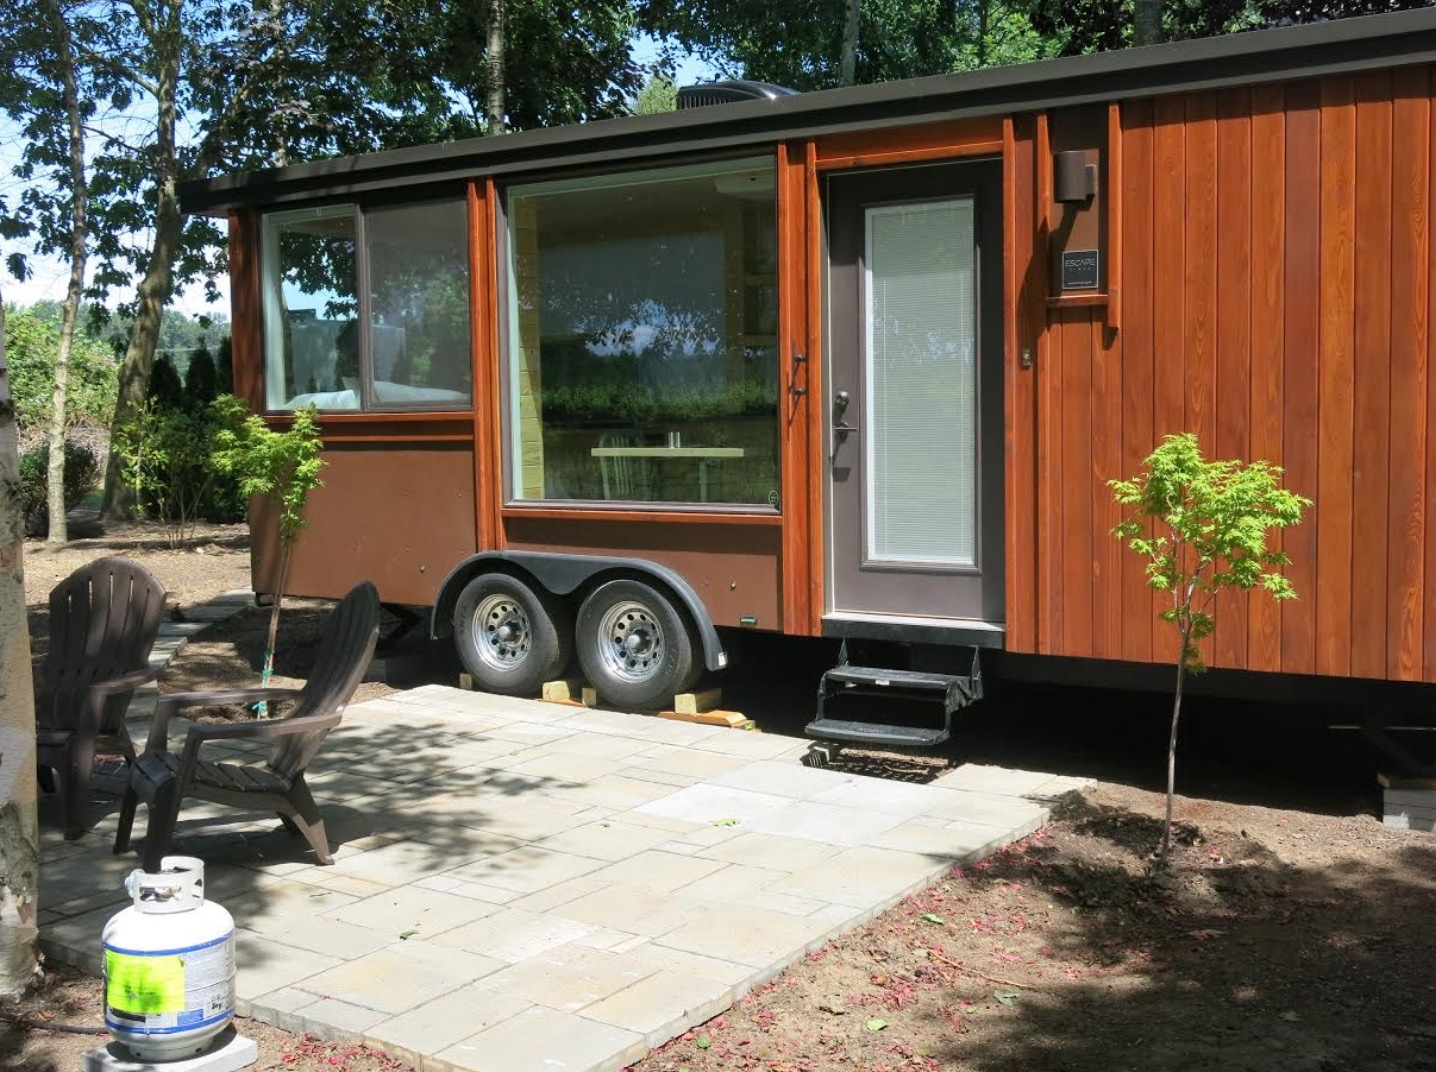 Vacation Home Plans Small Escape Vista Tiny House Vacation In Oregon